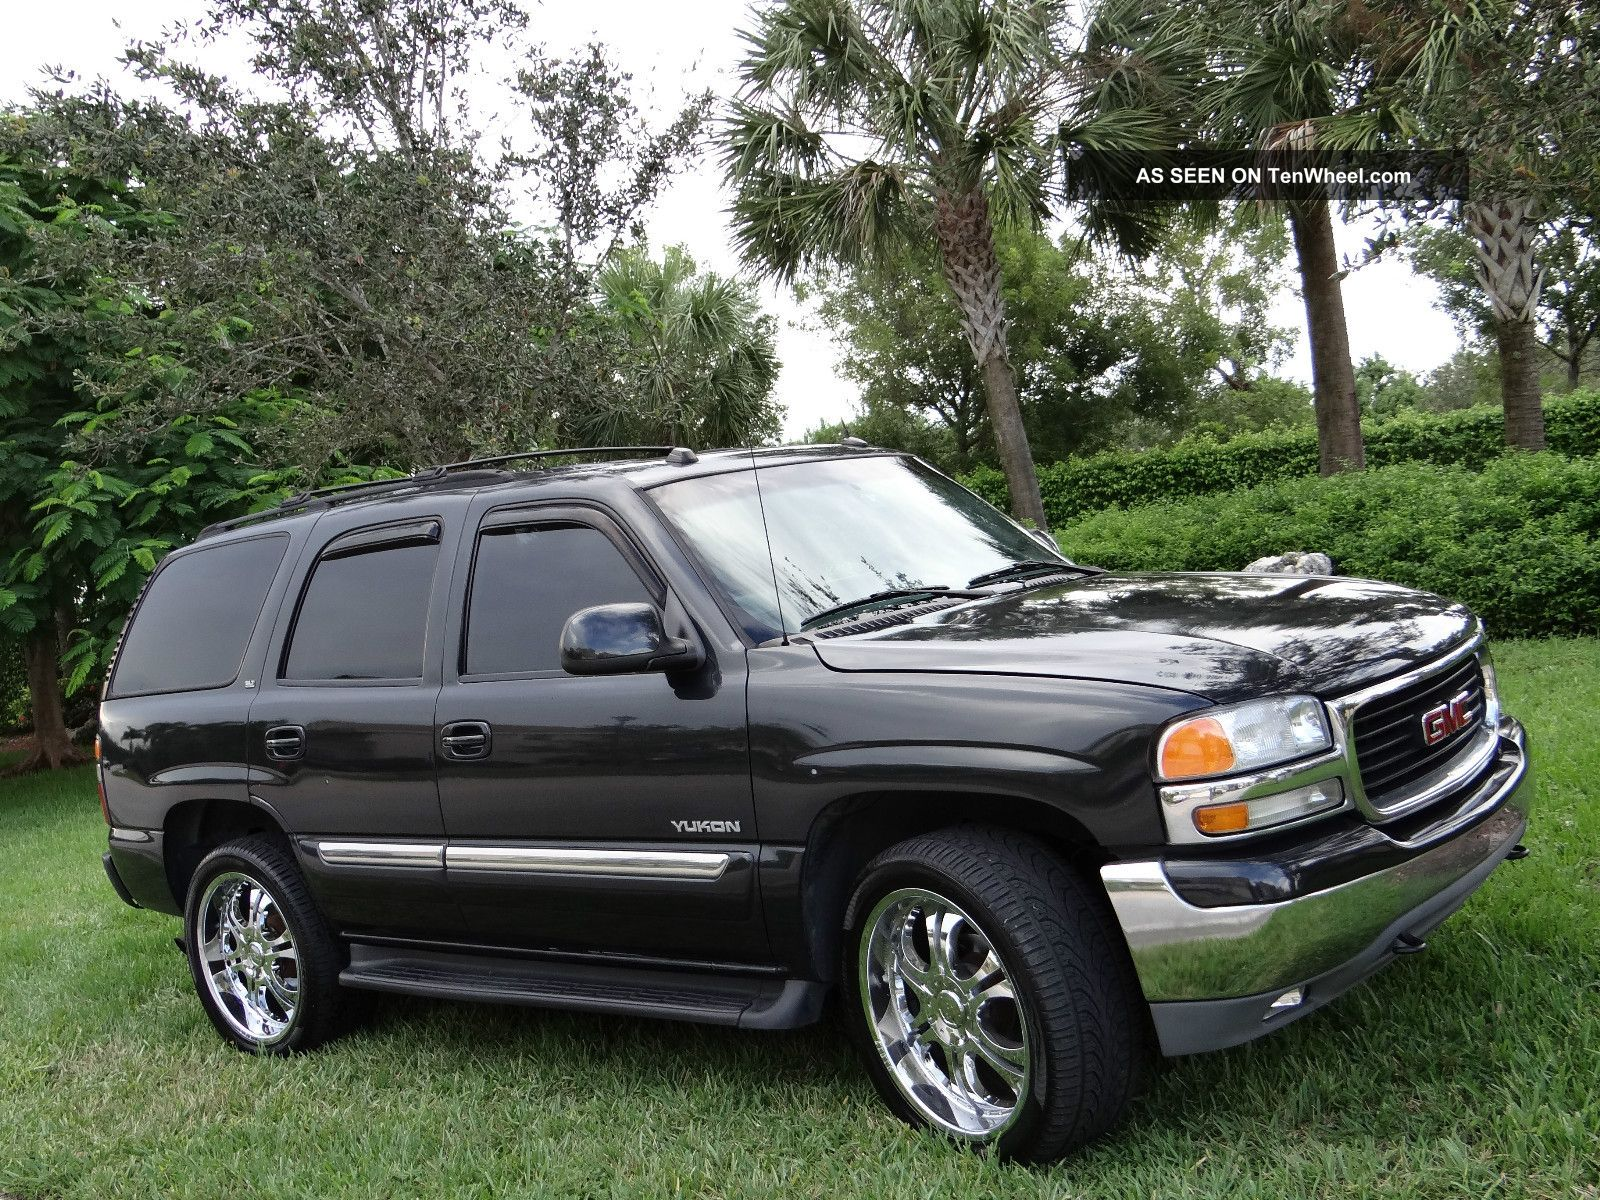 2005 gmc yukon slt sport utility 4 door 5 3l. Black Bedroom Furniture Sets. Home Design Ideas